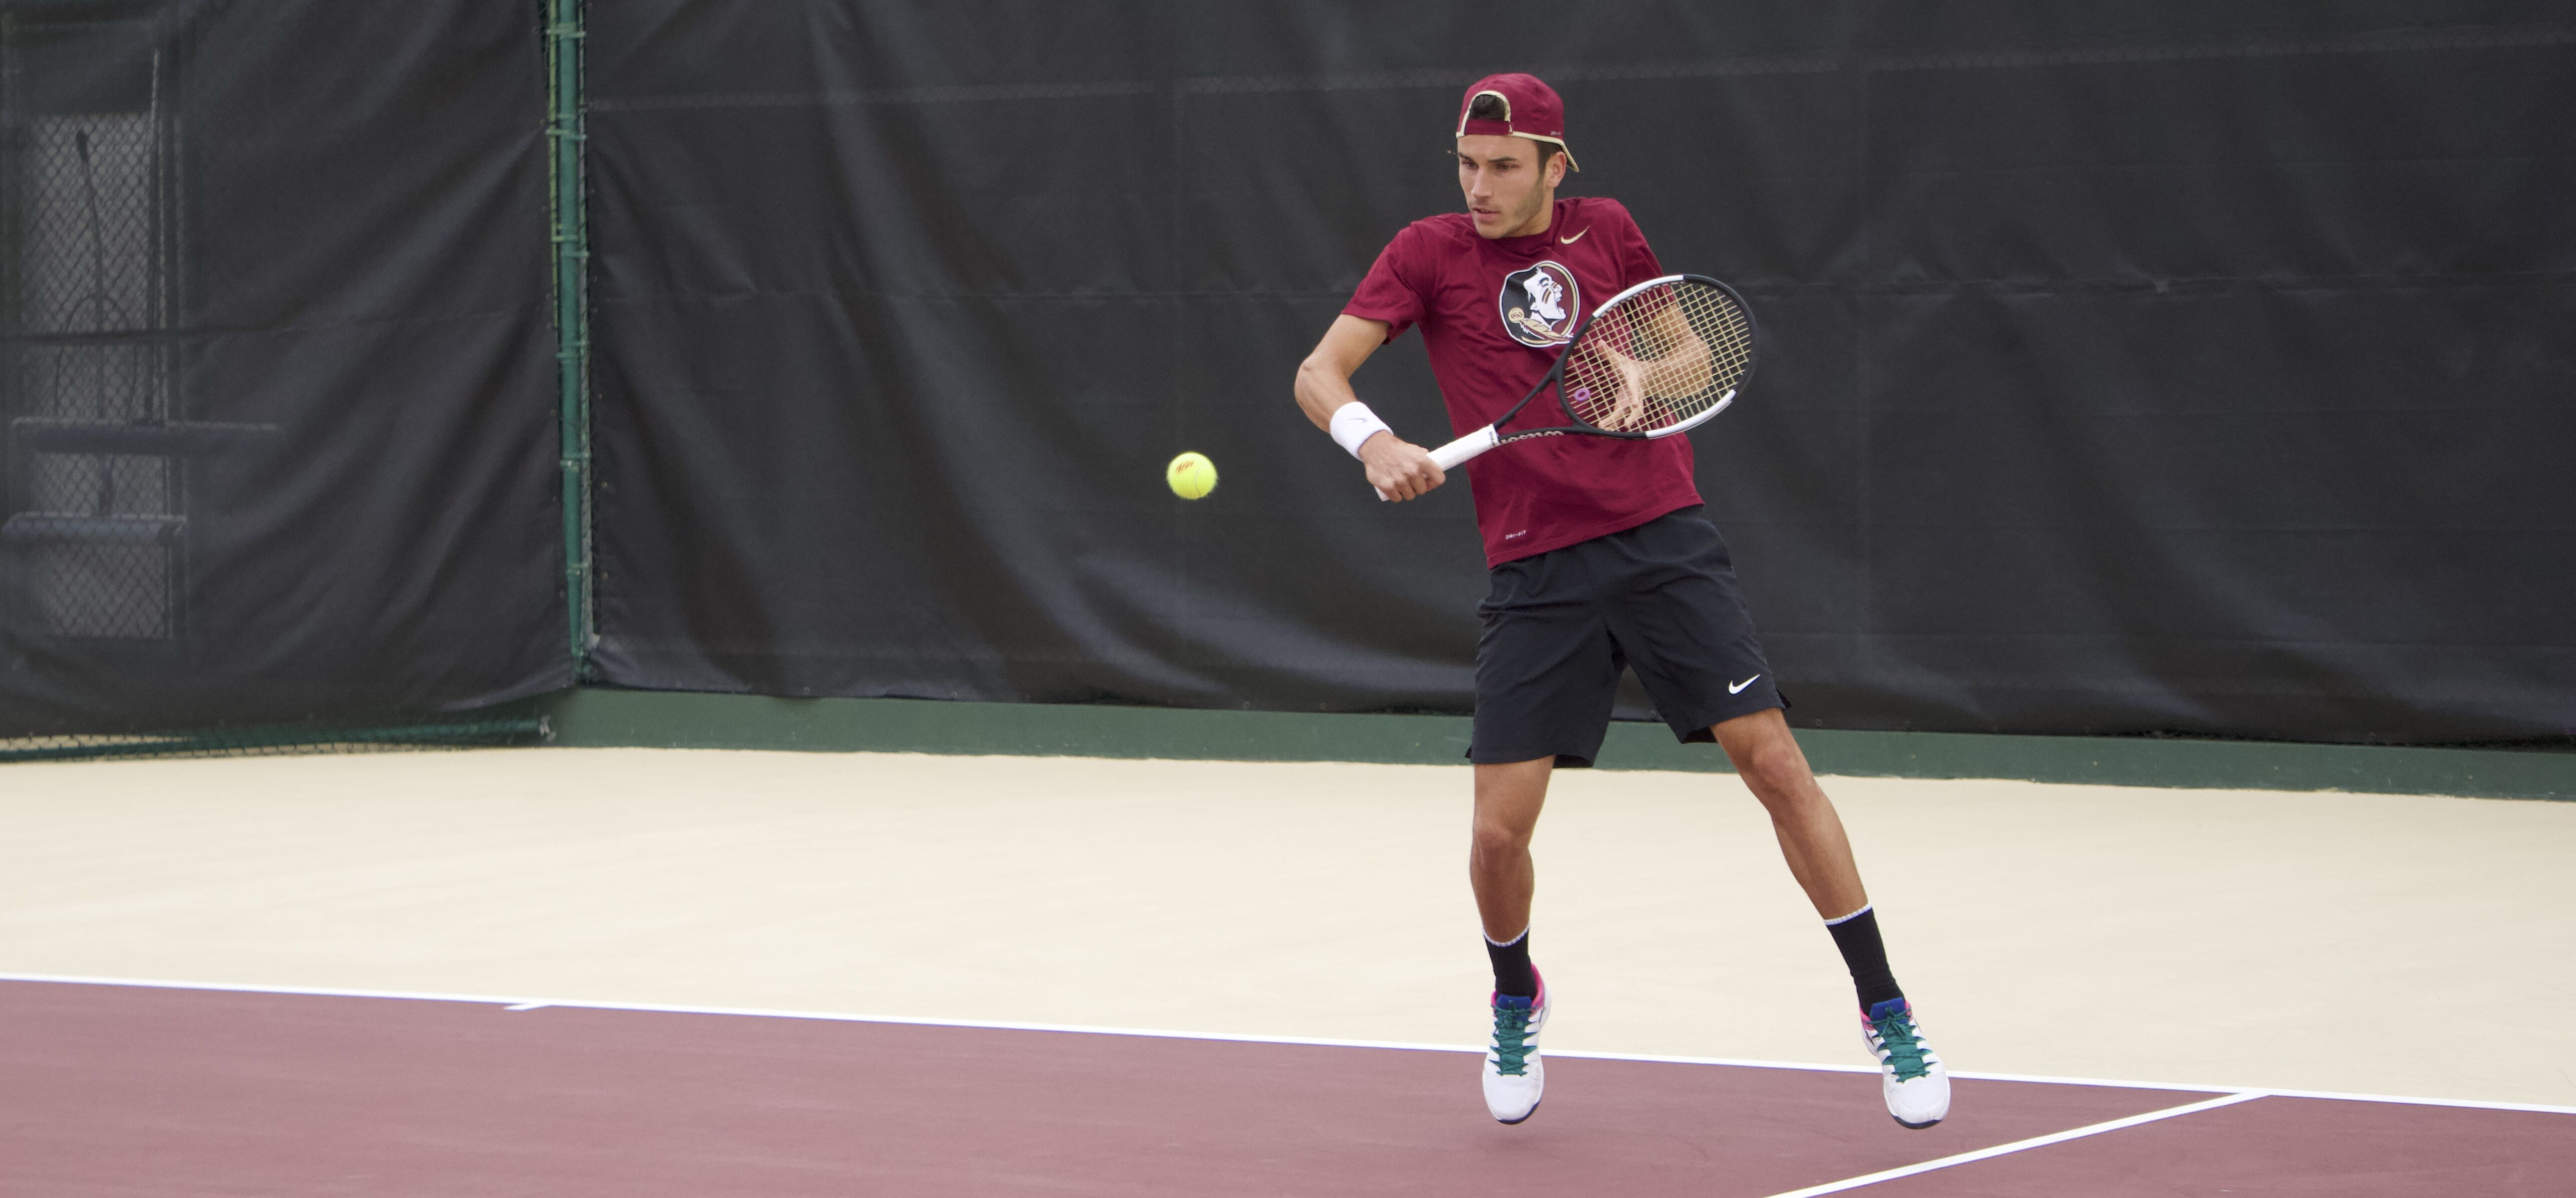 Men's Tennis Wins a Thriller over No. 21 Mississippi State 5-2